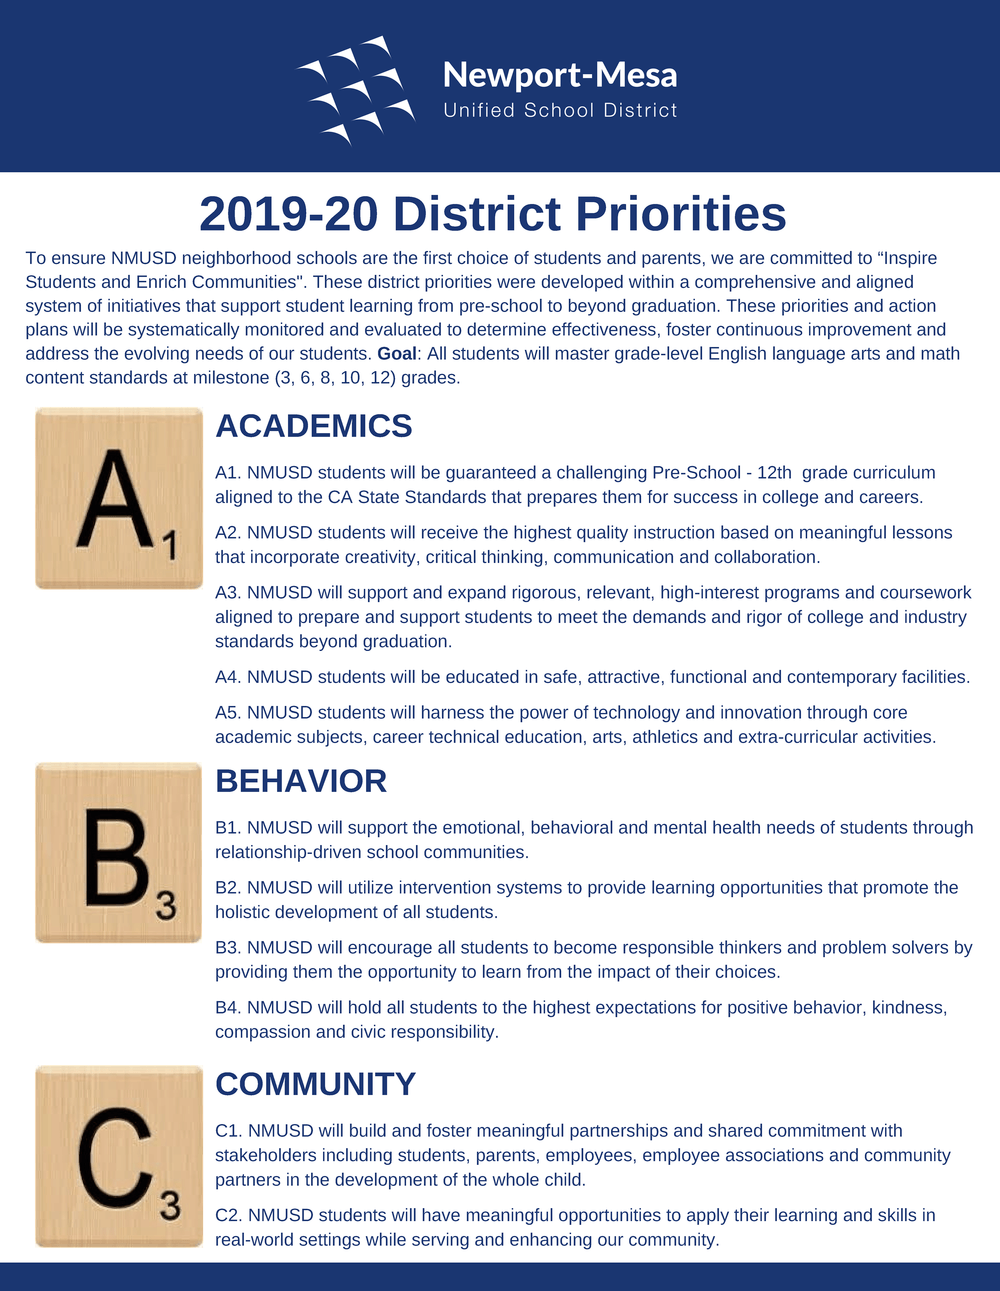 2019-20 District Priorities Flyer